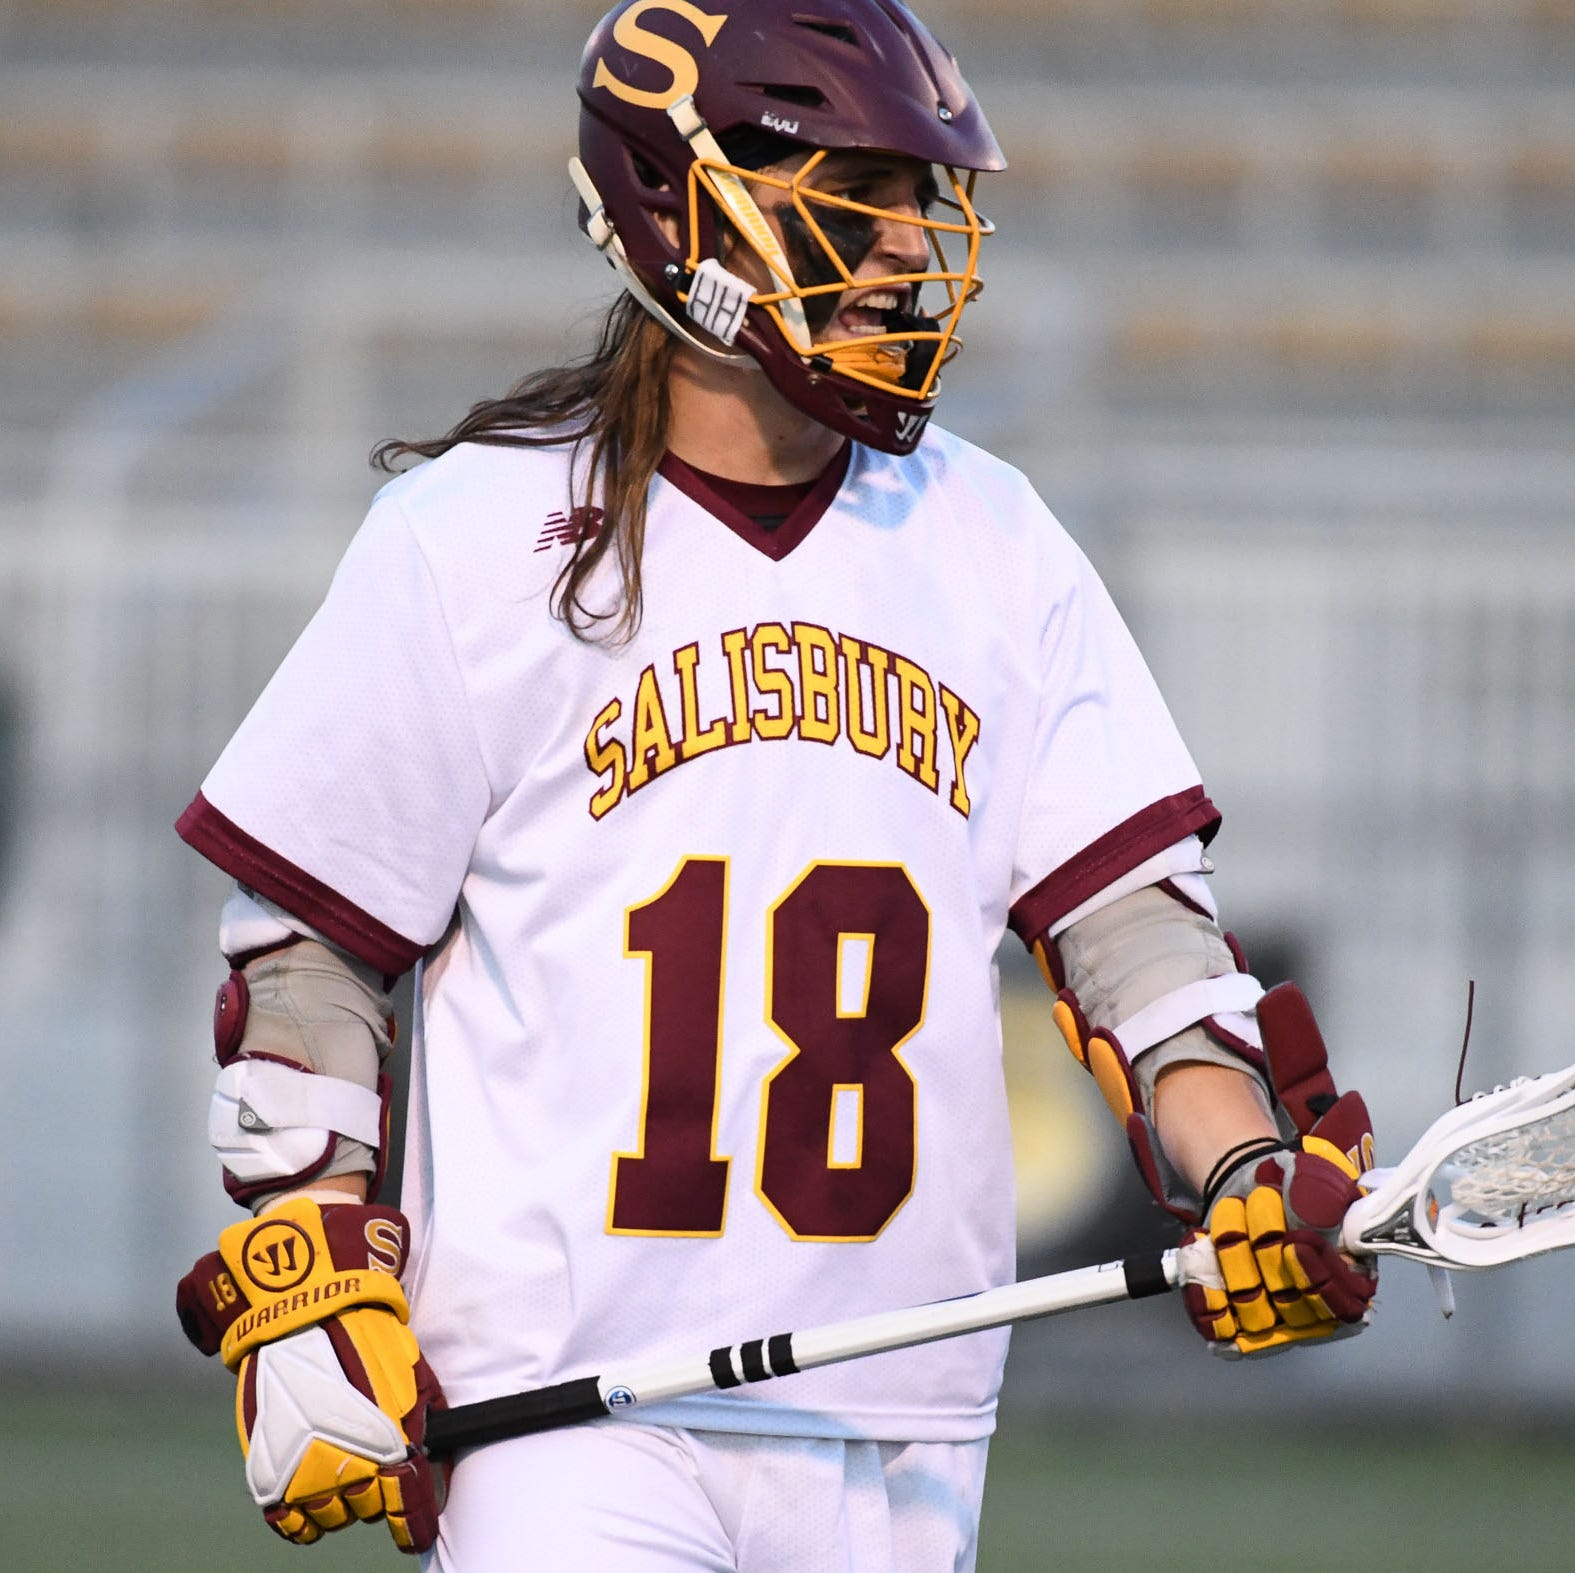 Stephen Decatur grad Corey Gwin looks for third title with Salisbury men's lacrosse team